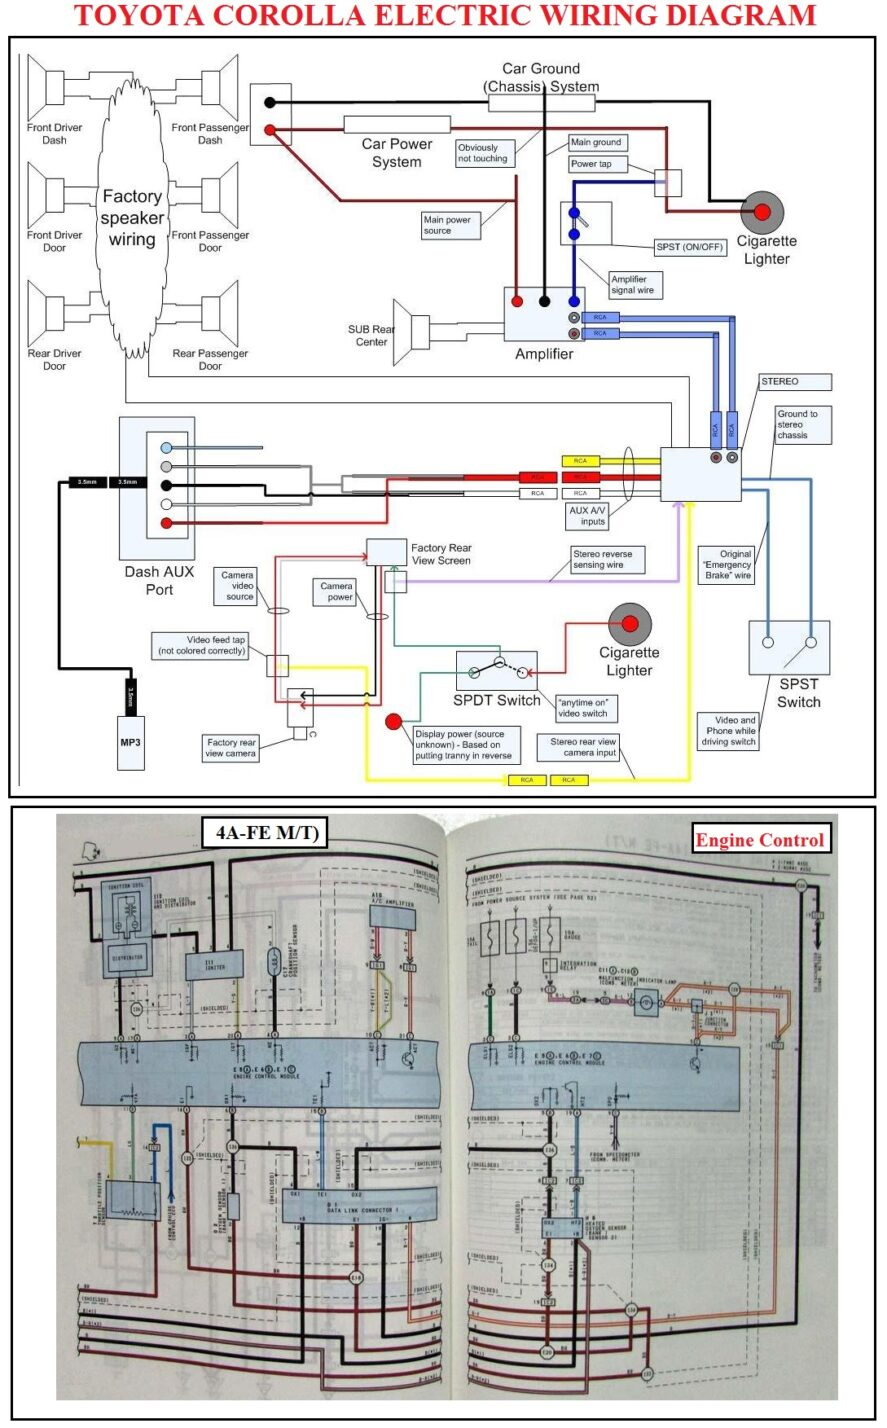 Toyota Corolla Wiring Diagram | Car ConstructionCAR ANATOMY